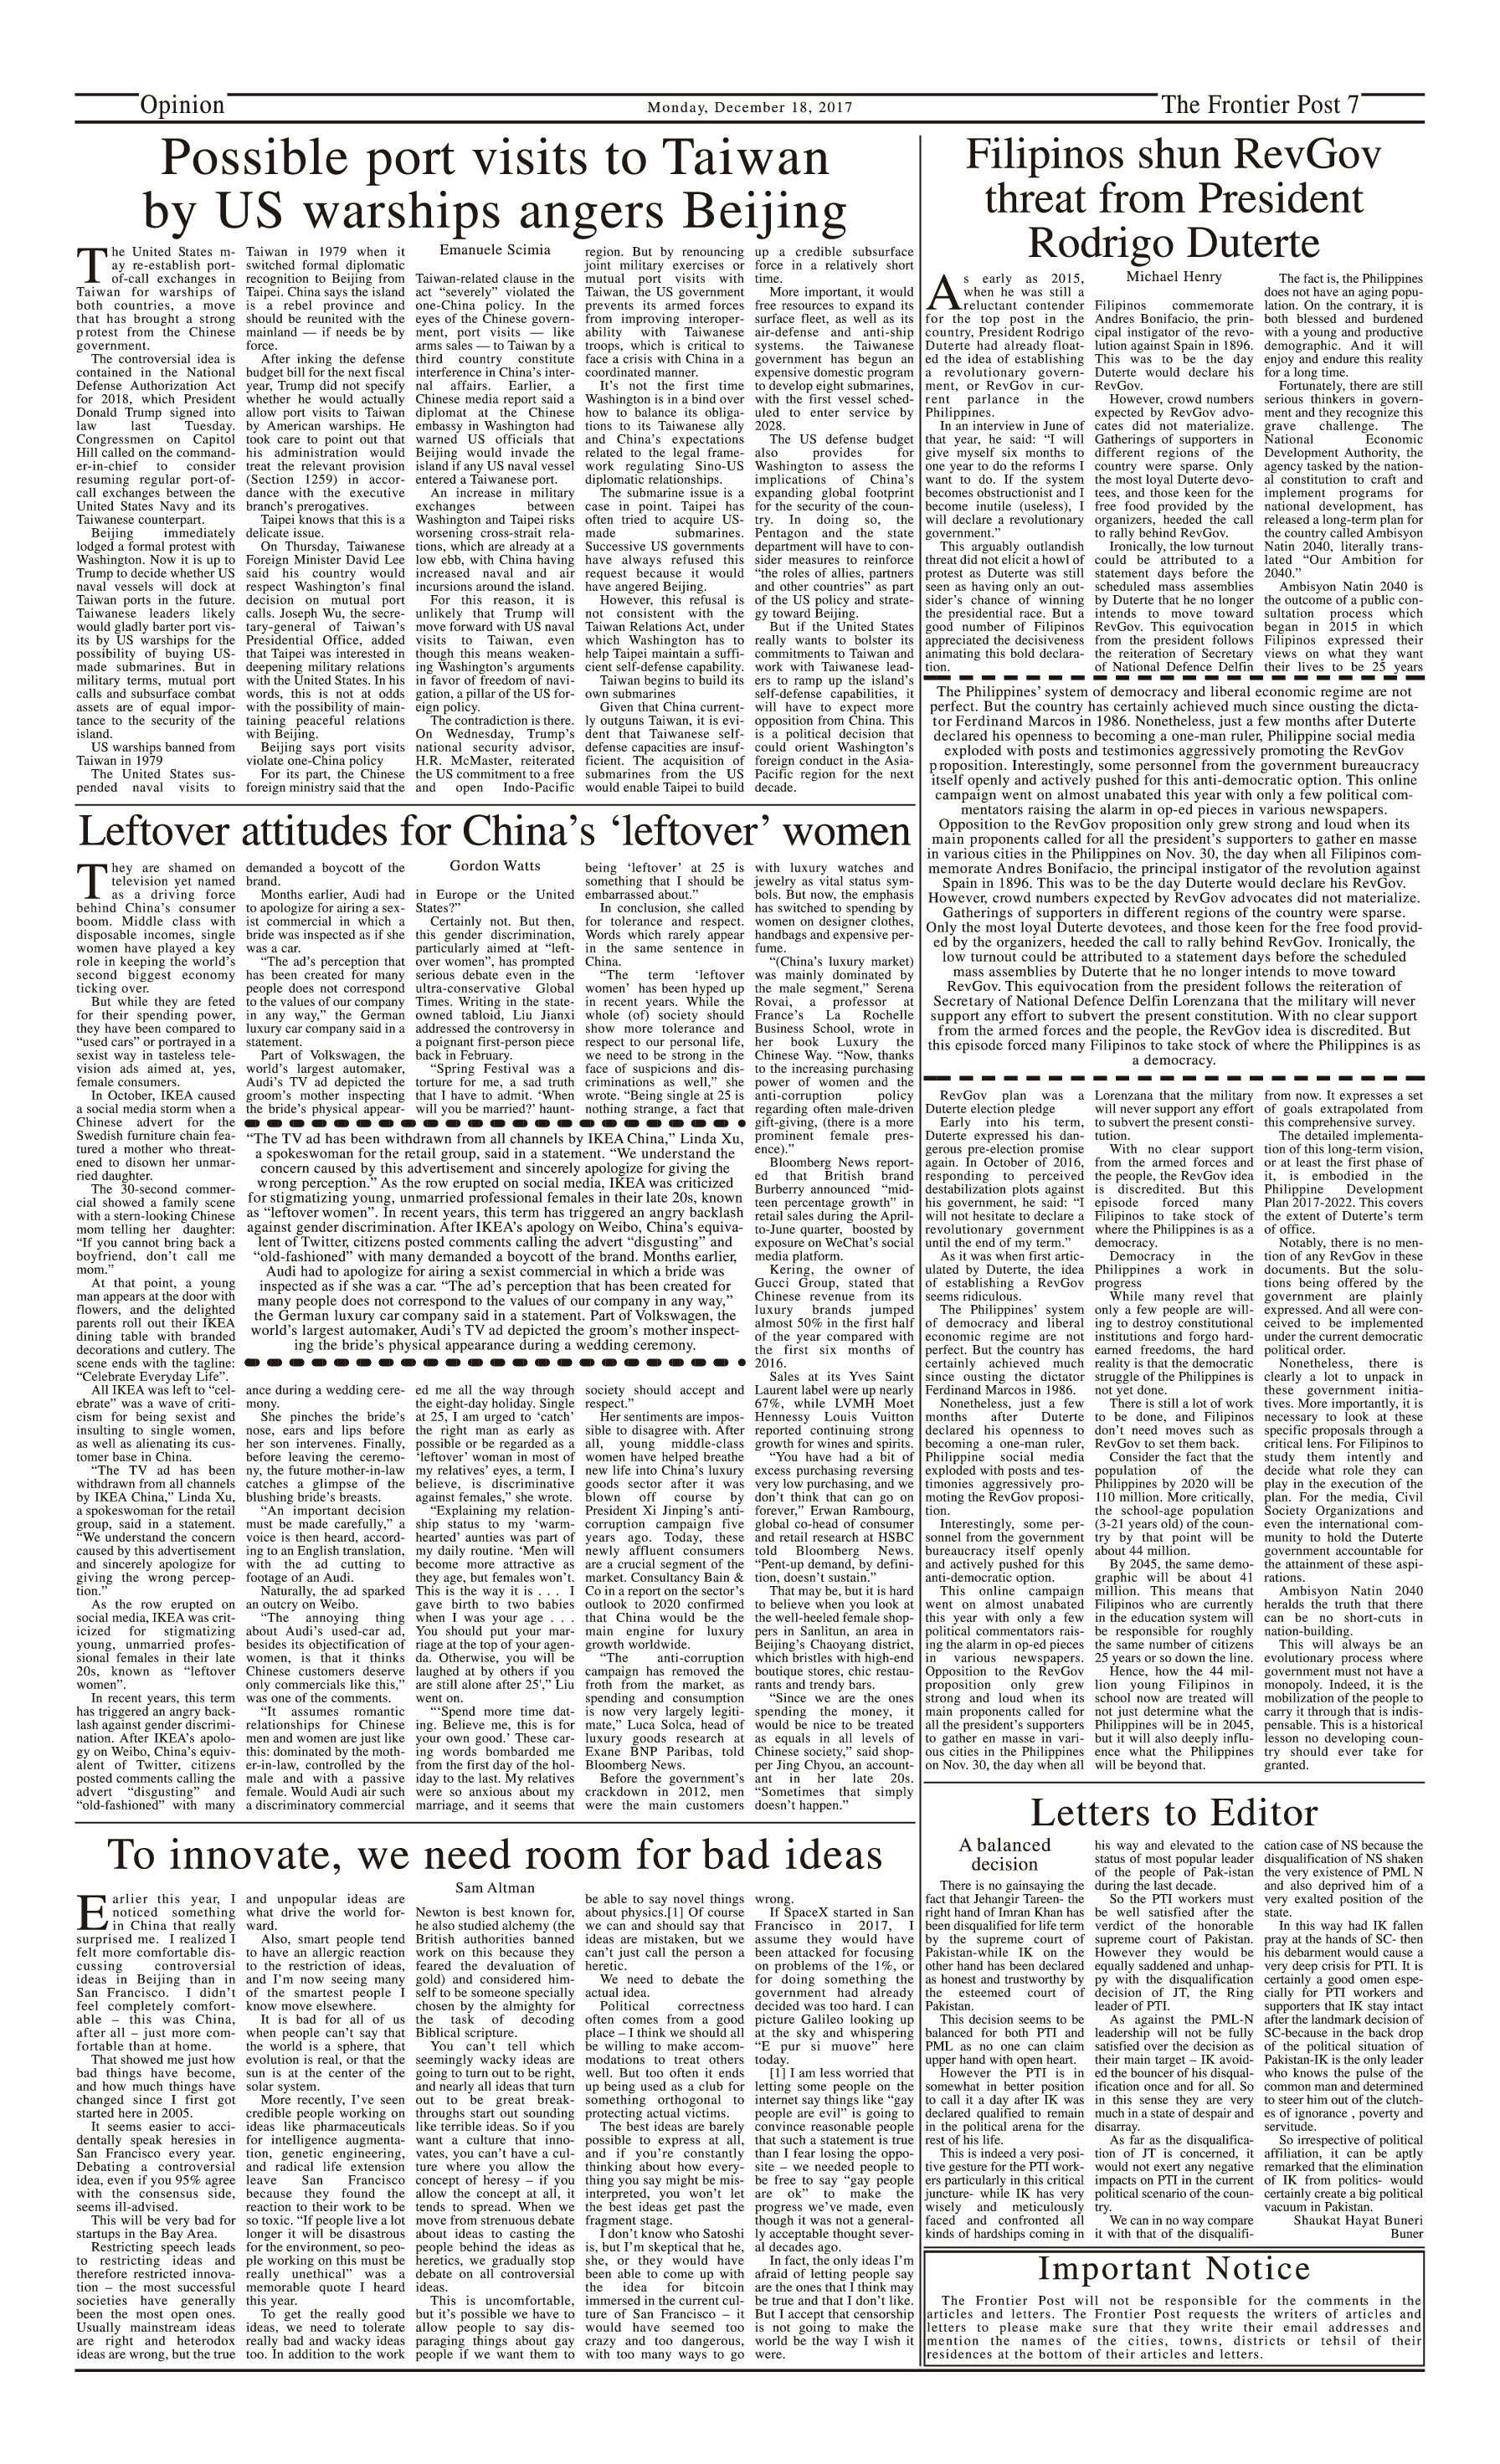 Opinion Page 18-12